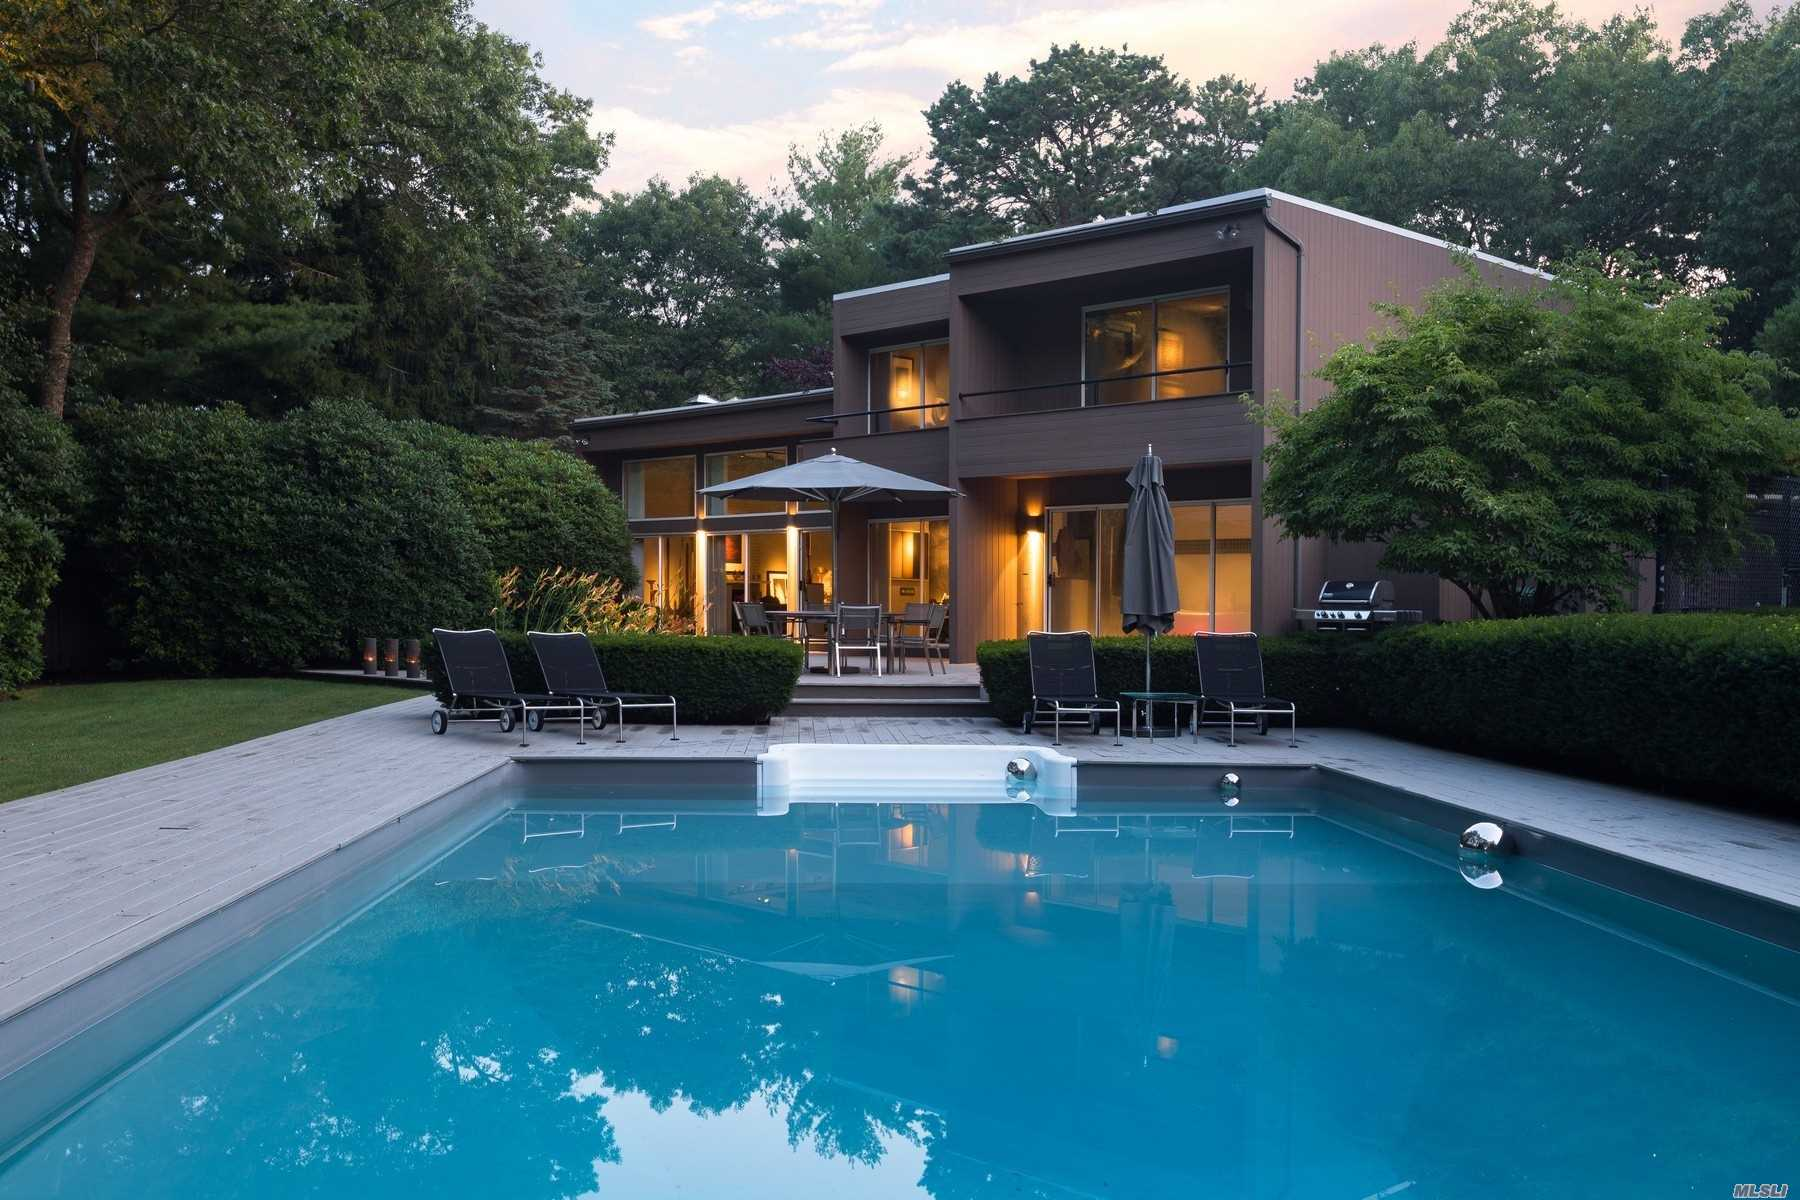 9 Bluejay Way - Quogue, New York